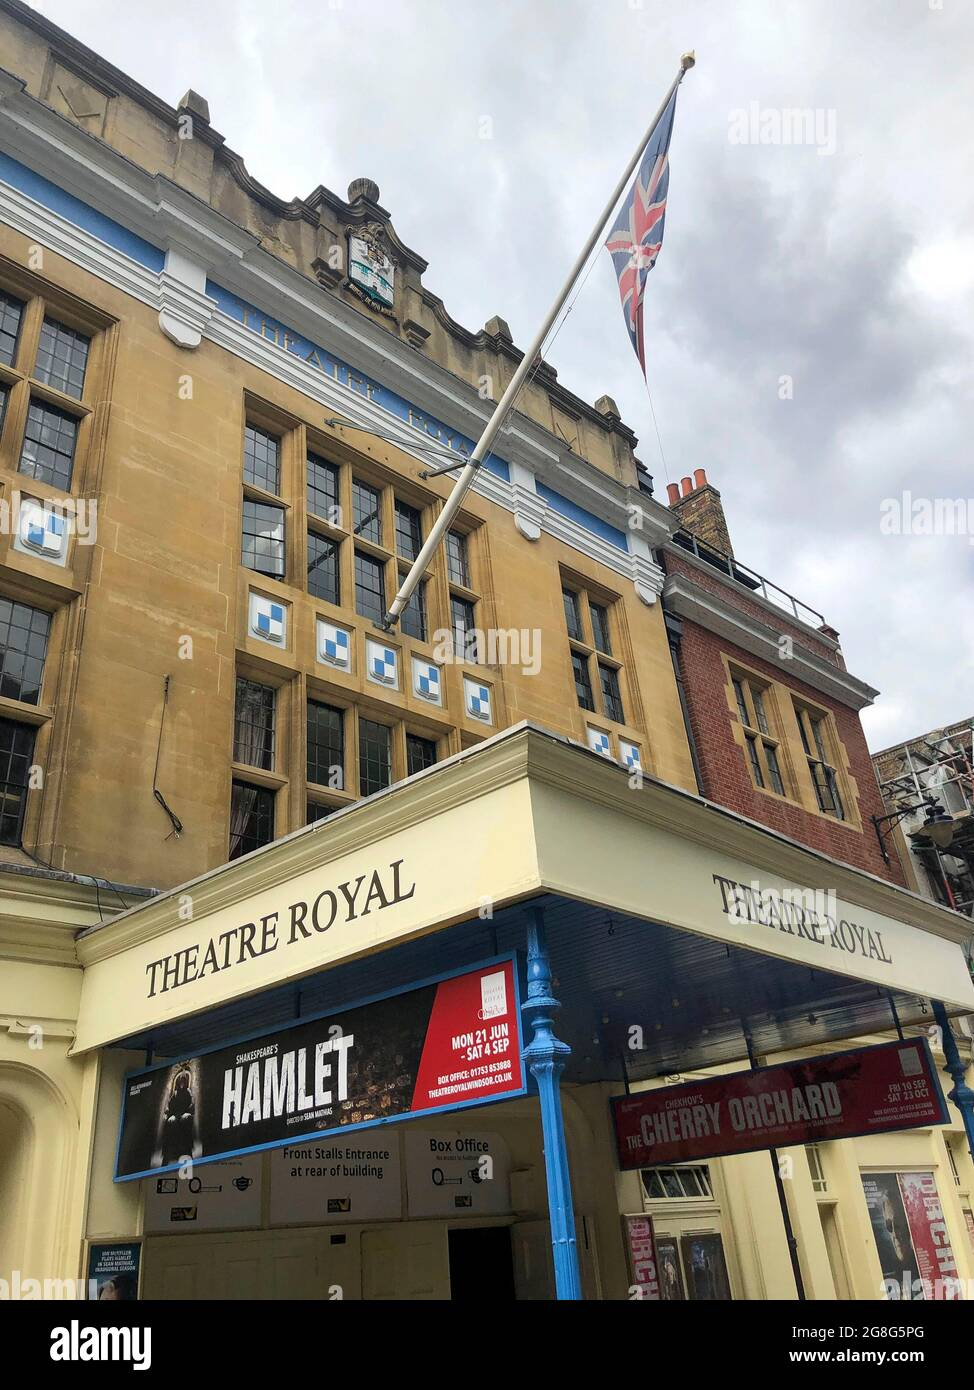 exterior of the Theatre Royal Windsor, England displaying a poster for HAMLET by Shakespeare starring Sir Ian McKellen as the Danish Prince, running from June to September 2021. Directed by Sian Mathias and produced by Bill Kenwright this is a reimagined age, colour blind and gender blind production. Stock Photo